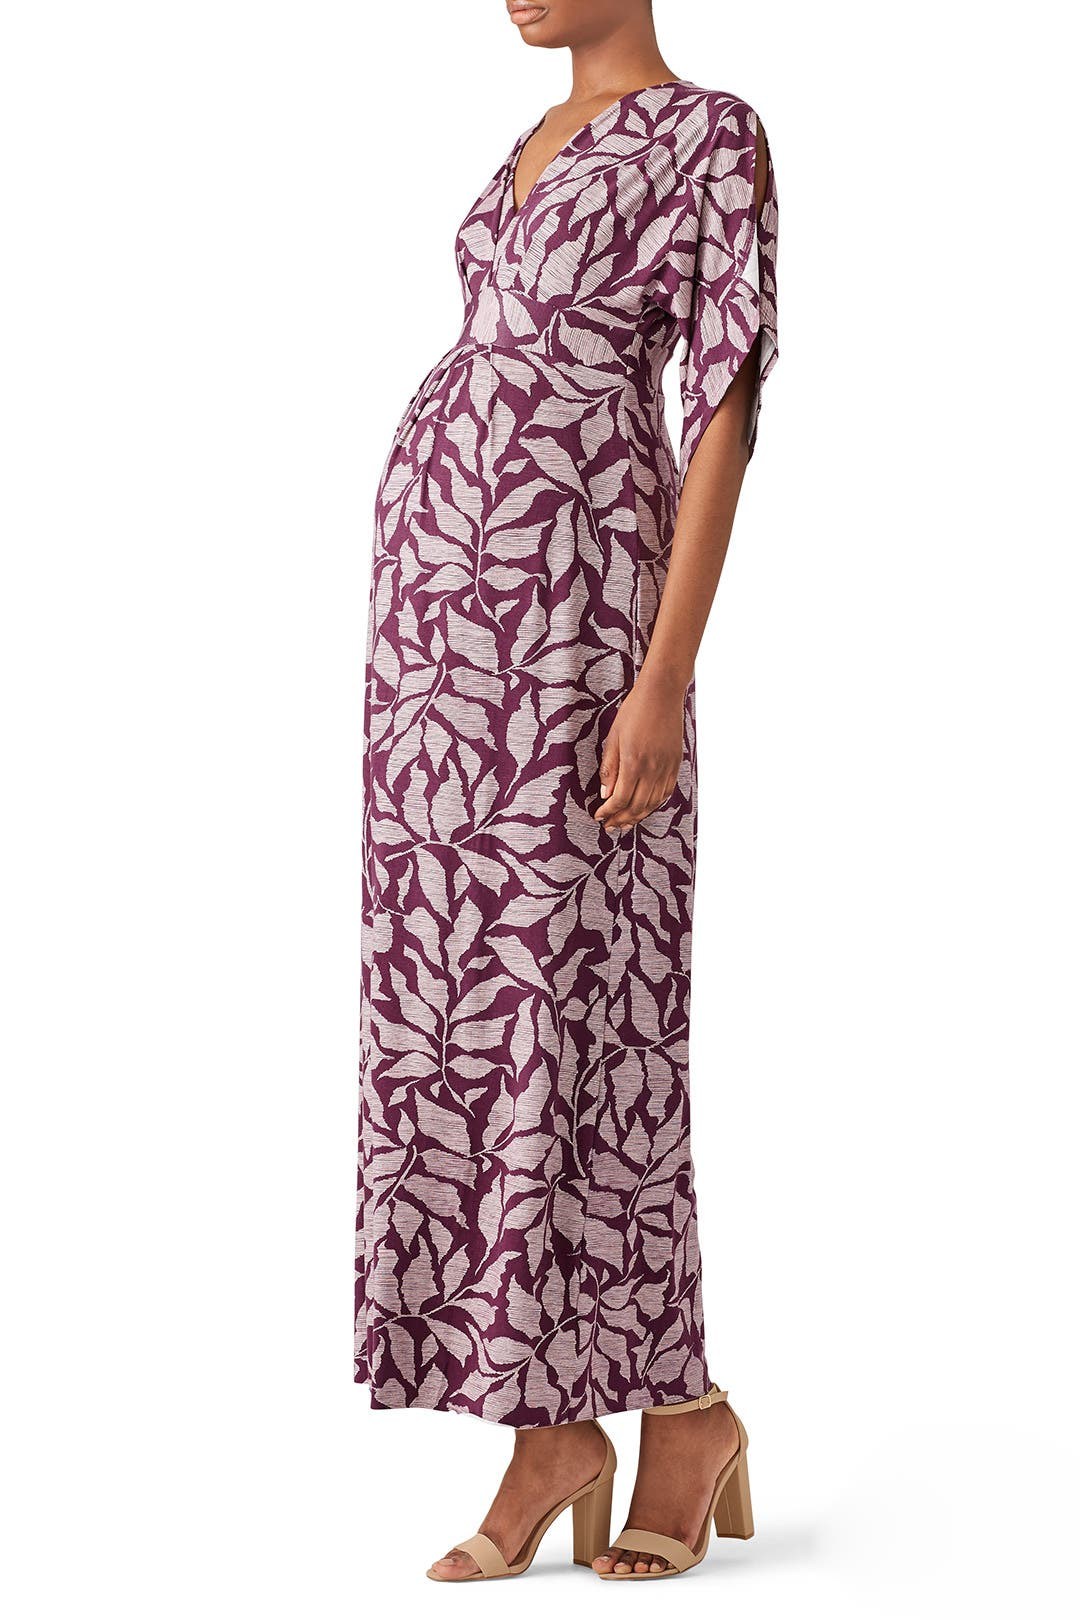 65a98ed071de7 Kimono Maternity Maxi by Ingrid & Isabel for $30 | Rent the Runway